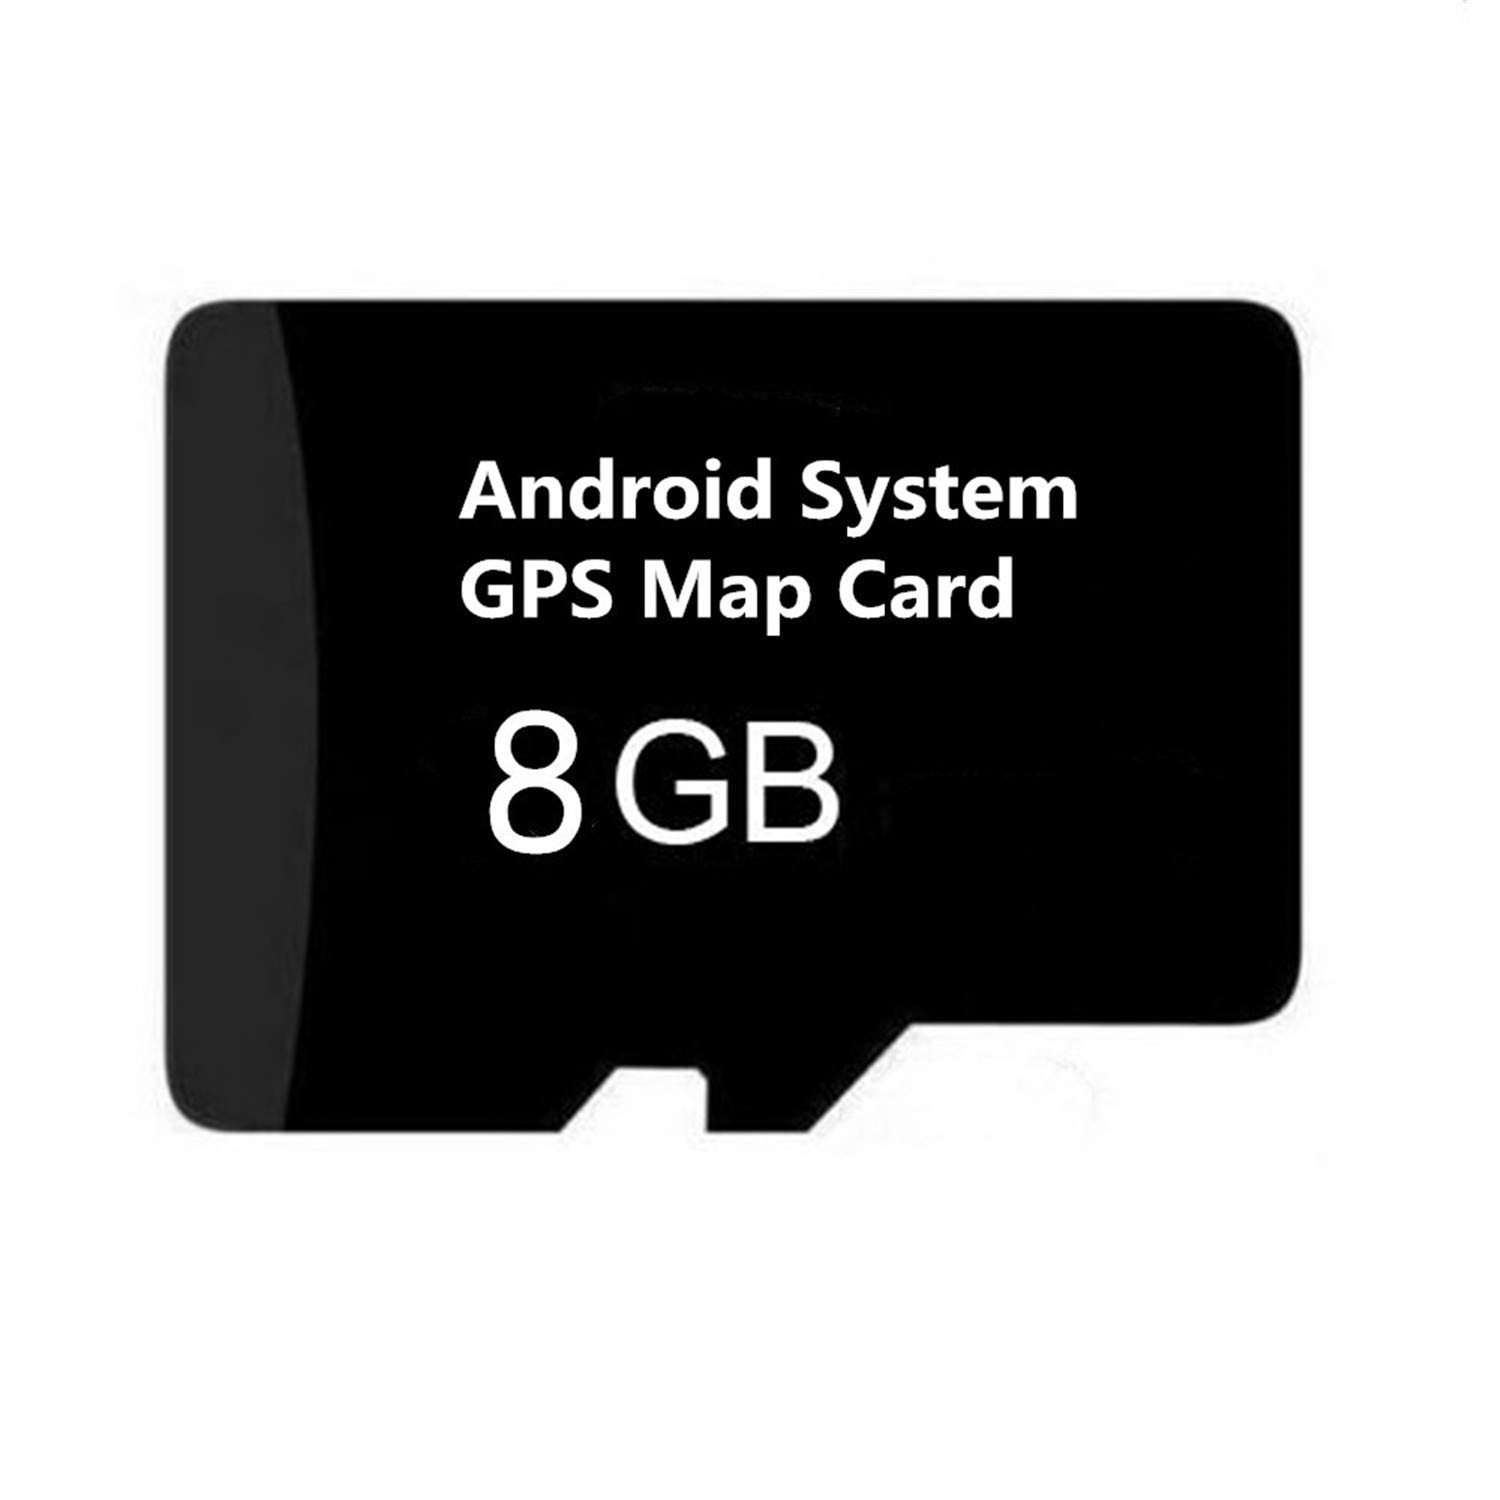 Android System GPS Map Navigation Card, Latest 2019 US/Canada Map Update on android liberty, android samsung, android navigation, android eclipse, android driver, android commander, android excel, android ring, android fusion,